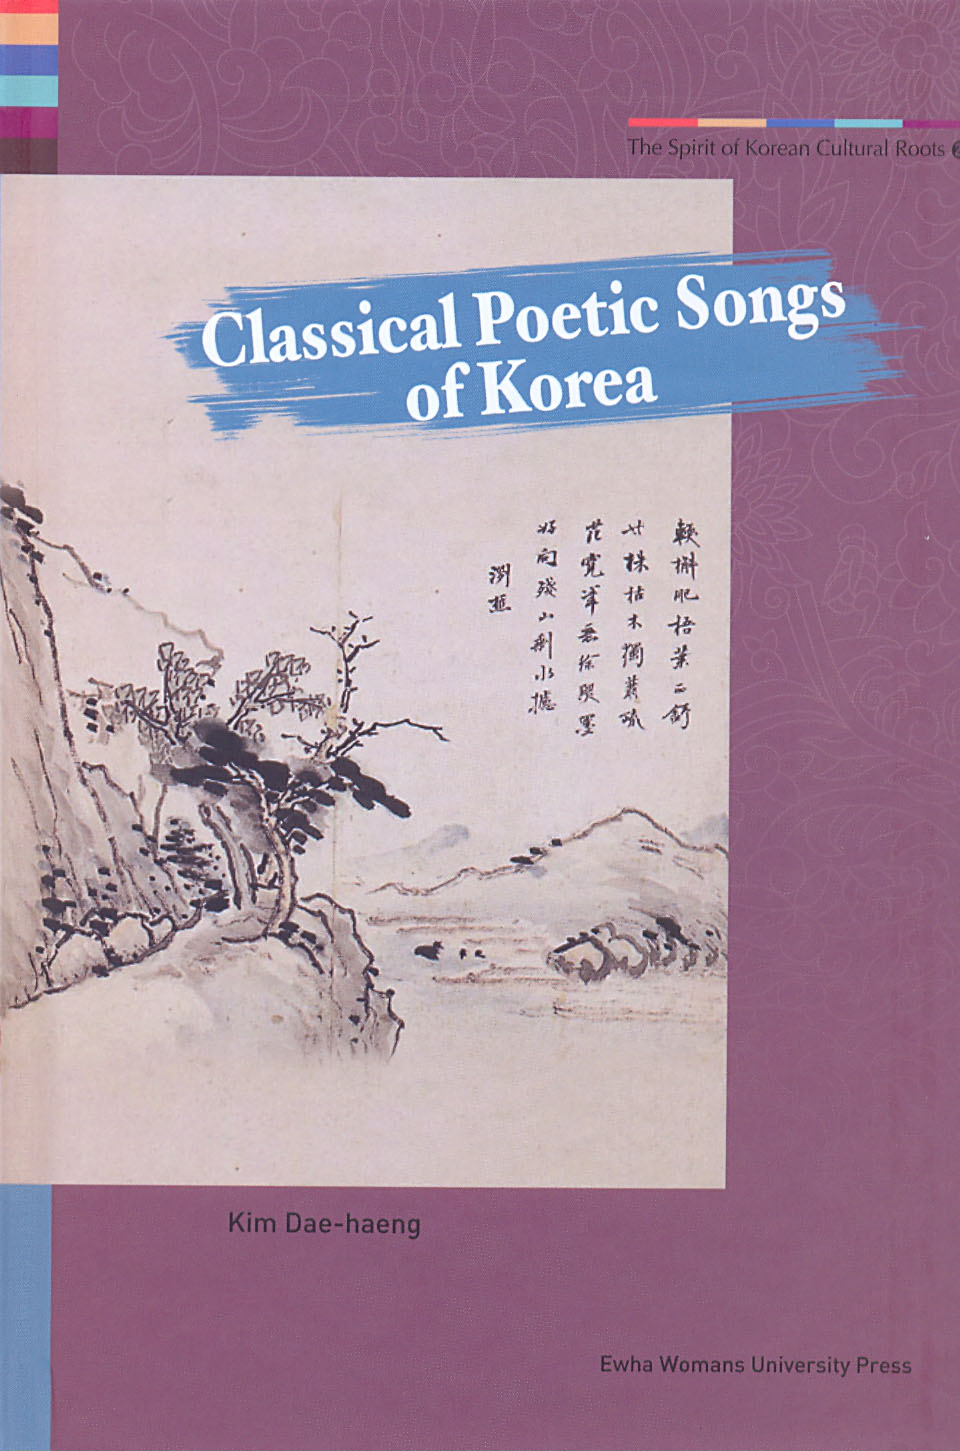 Classical Poetic Songs of Korea 도서이미지